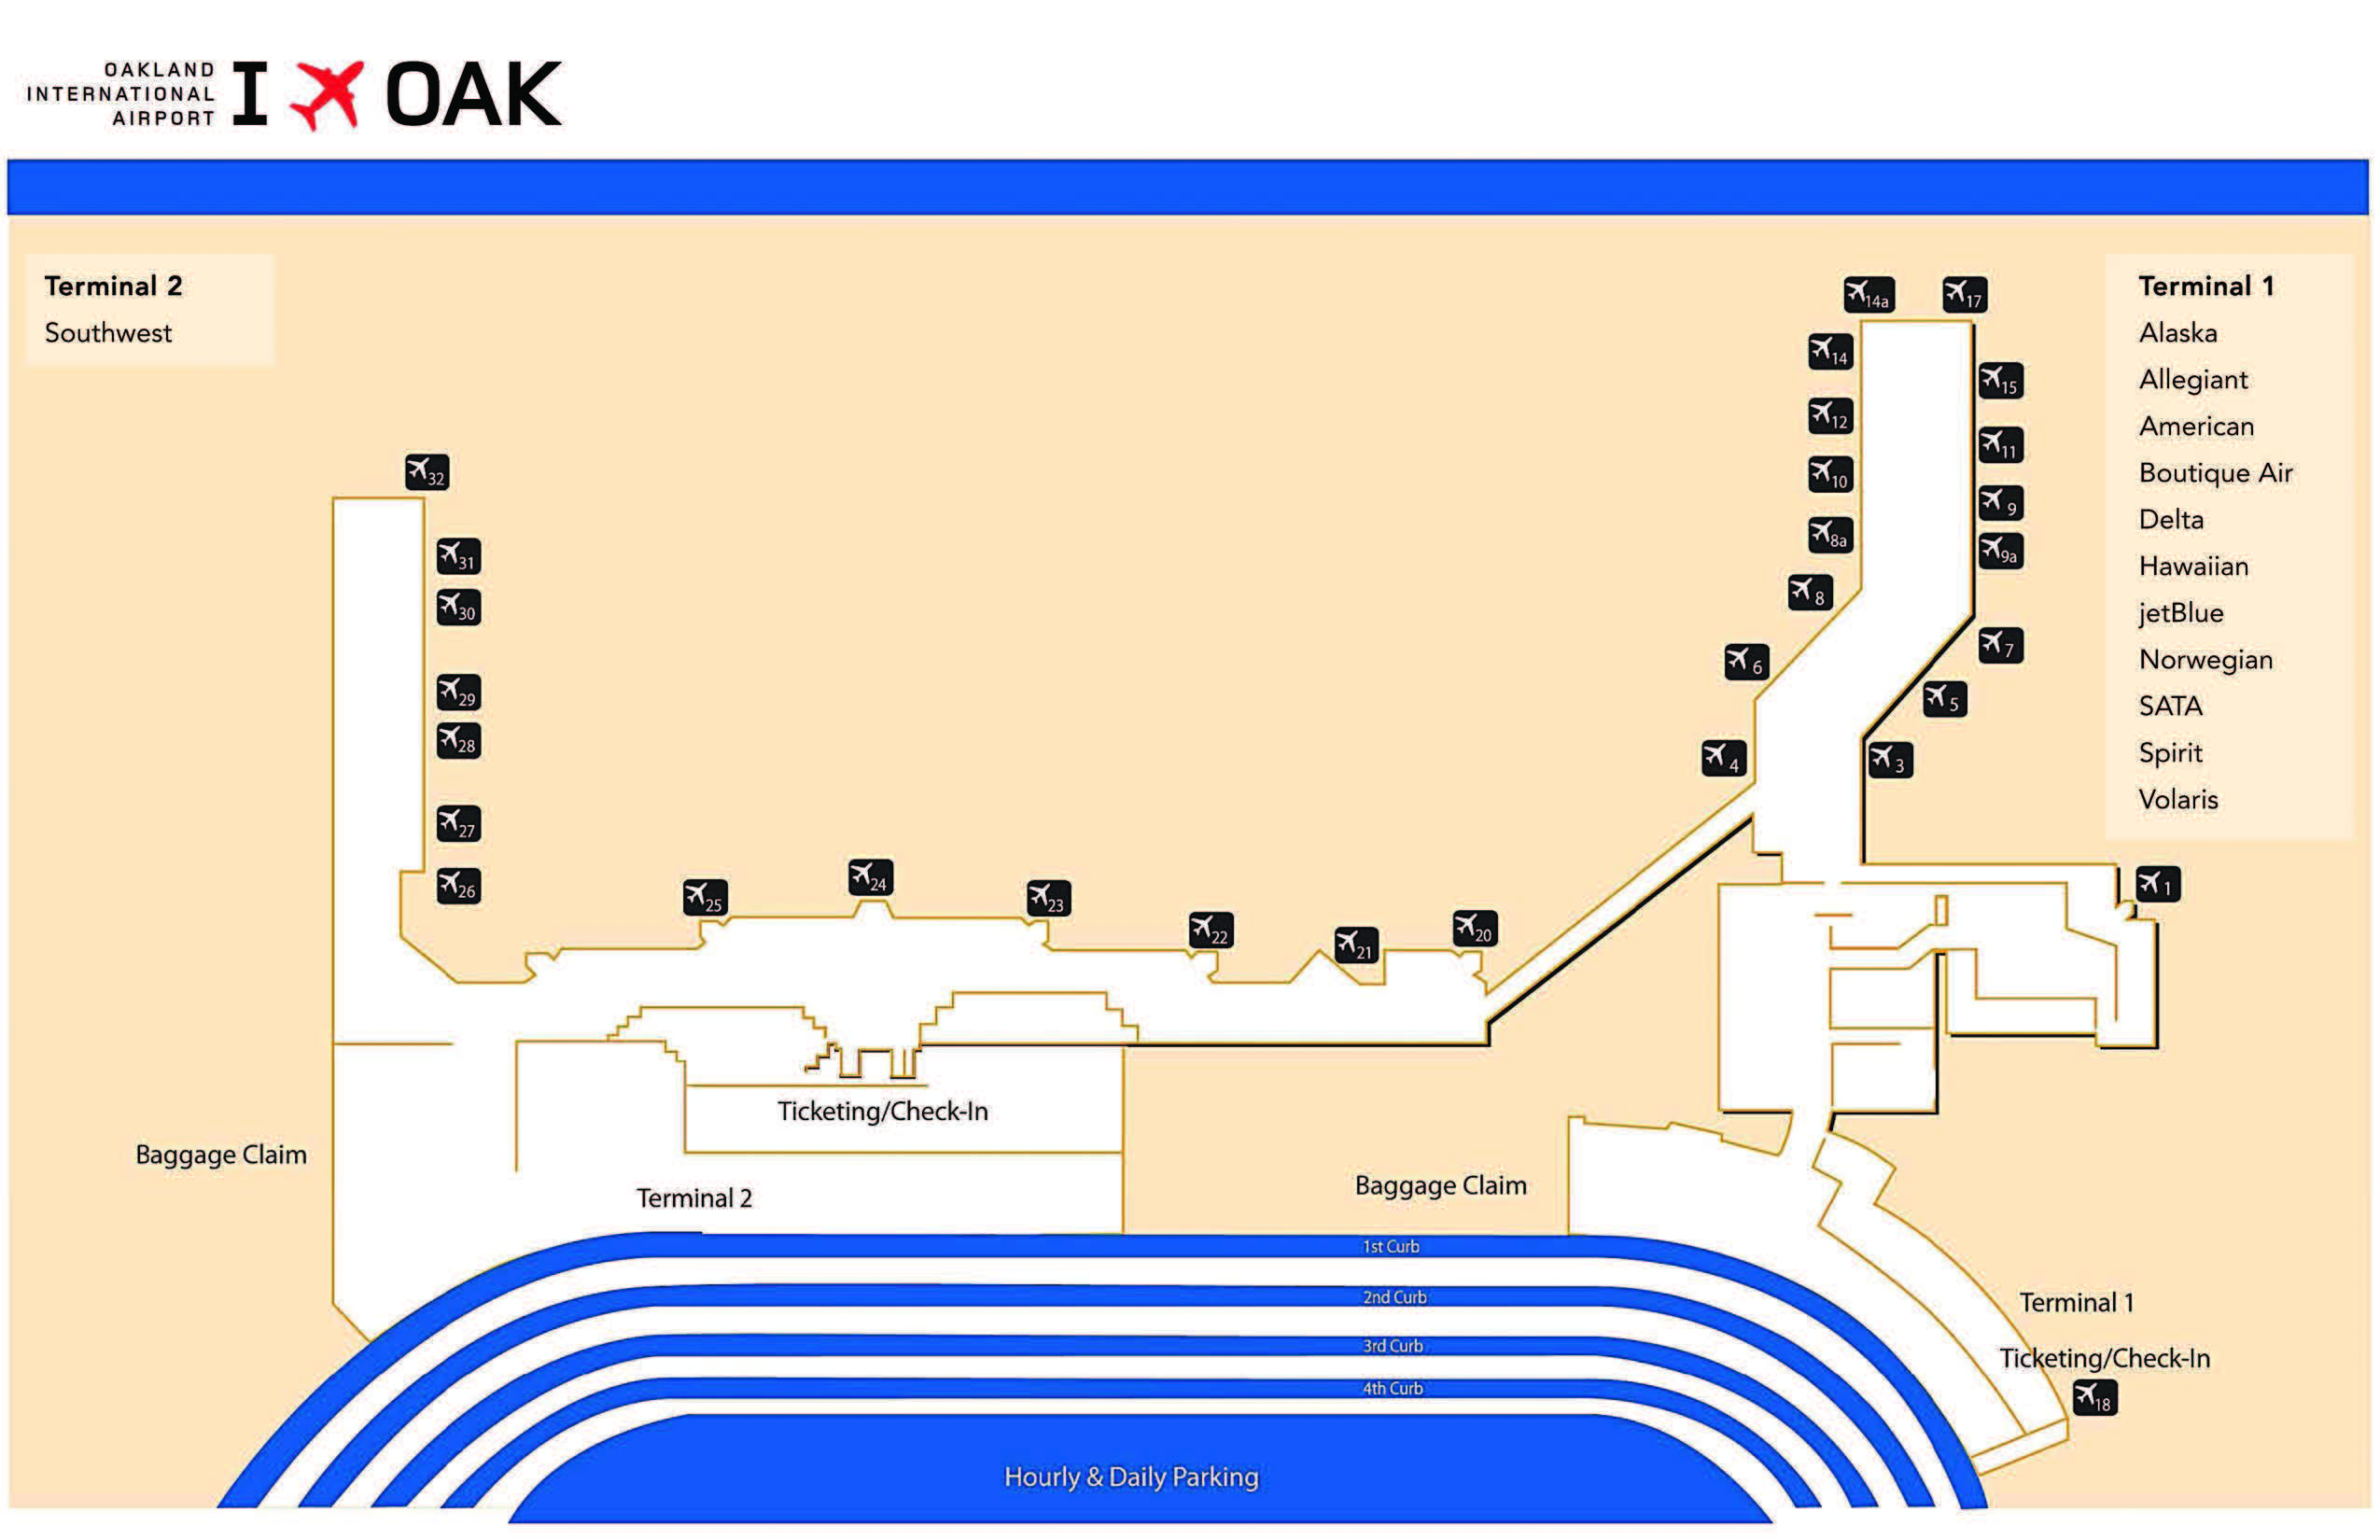 map of oakland airport Airport Terminal Map Oakland International Airport map of oakland airport